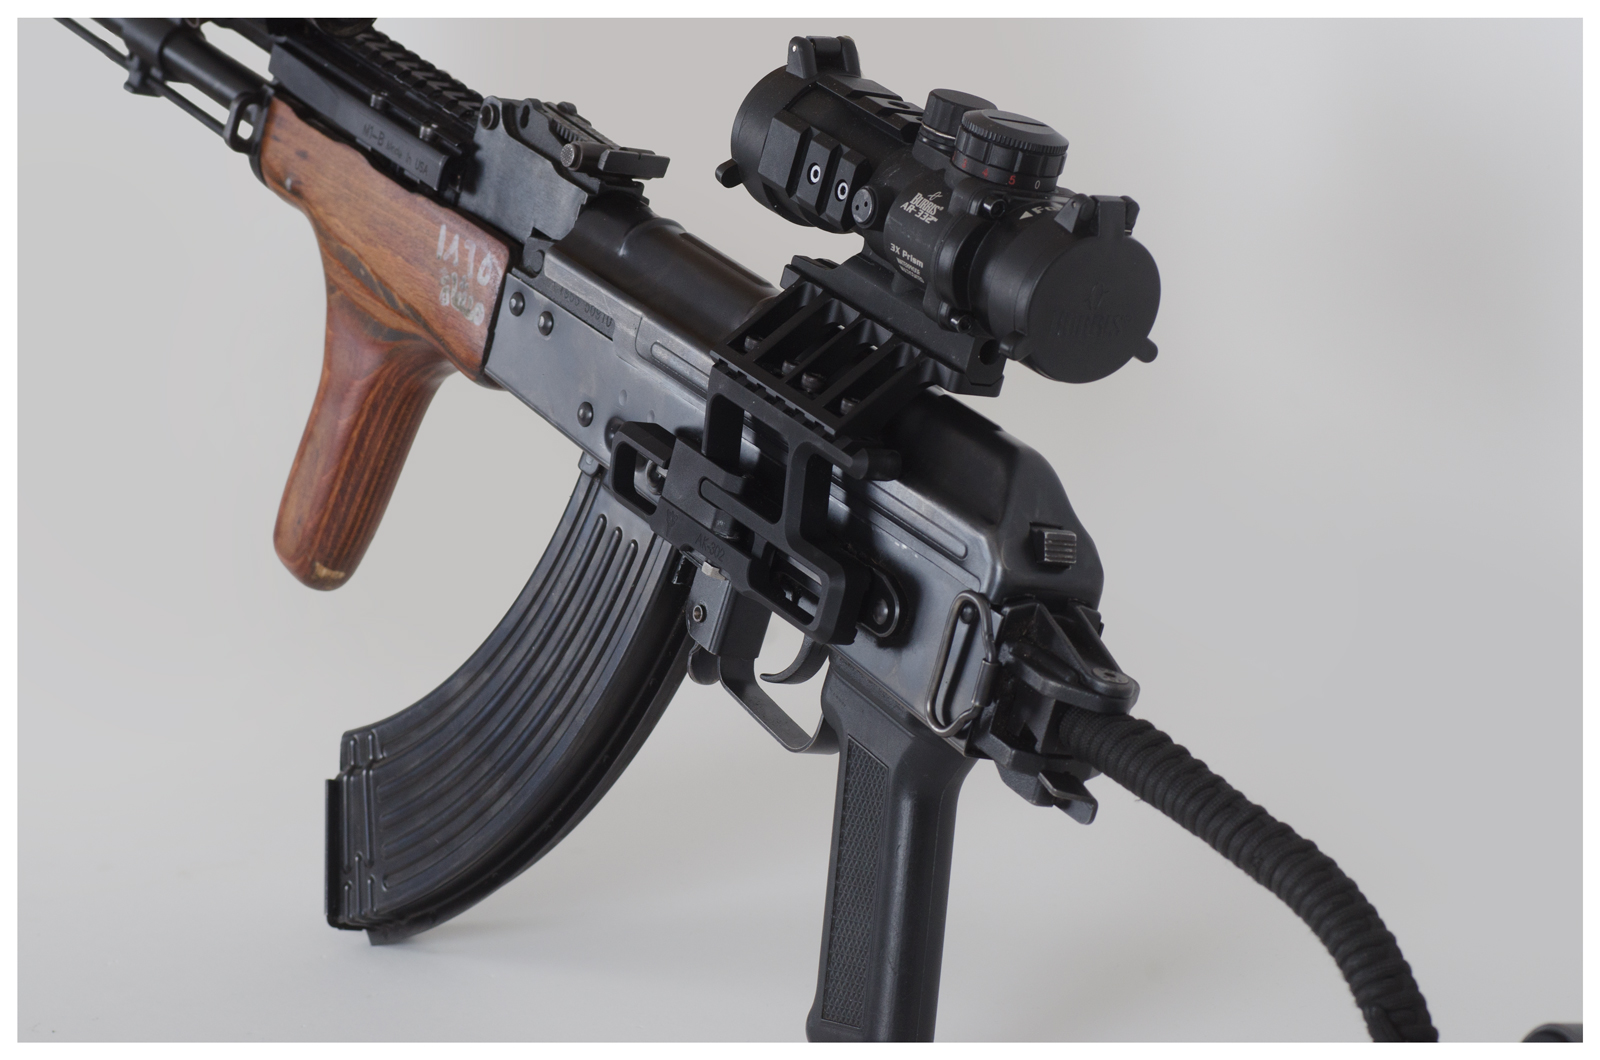 gasguns.info forum • View topic - [WTS] One of the ultimate GHK AIMS ...